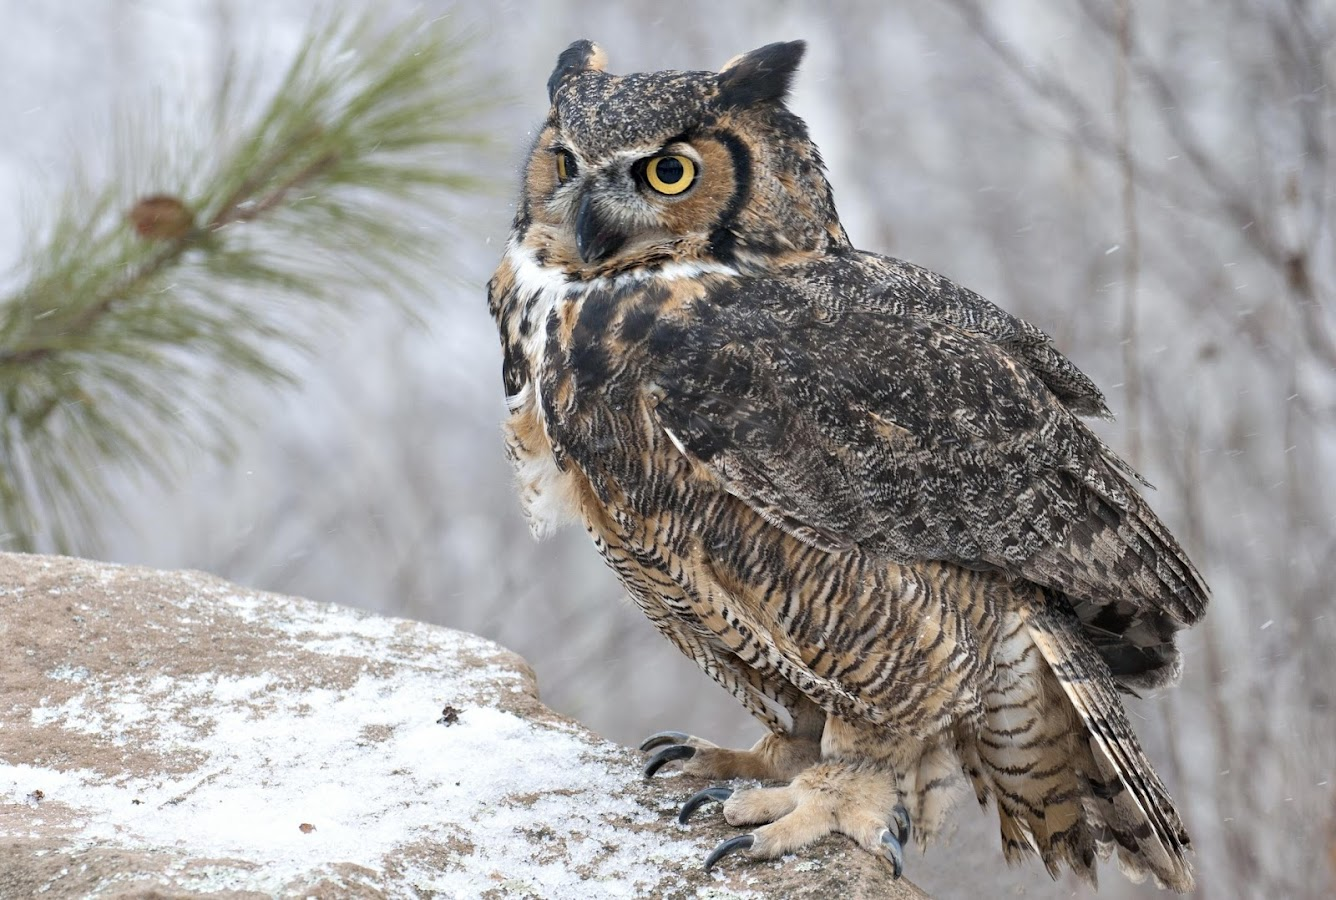 Owl Wallpaper Android Apps on Google Play